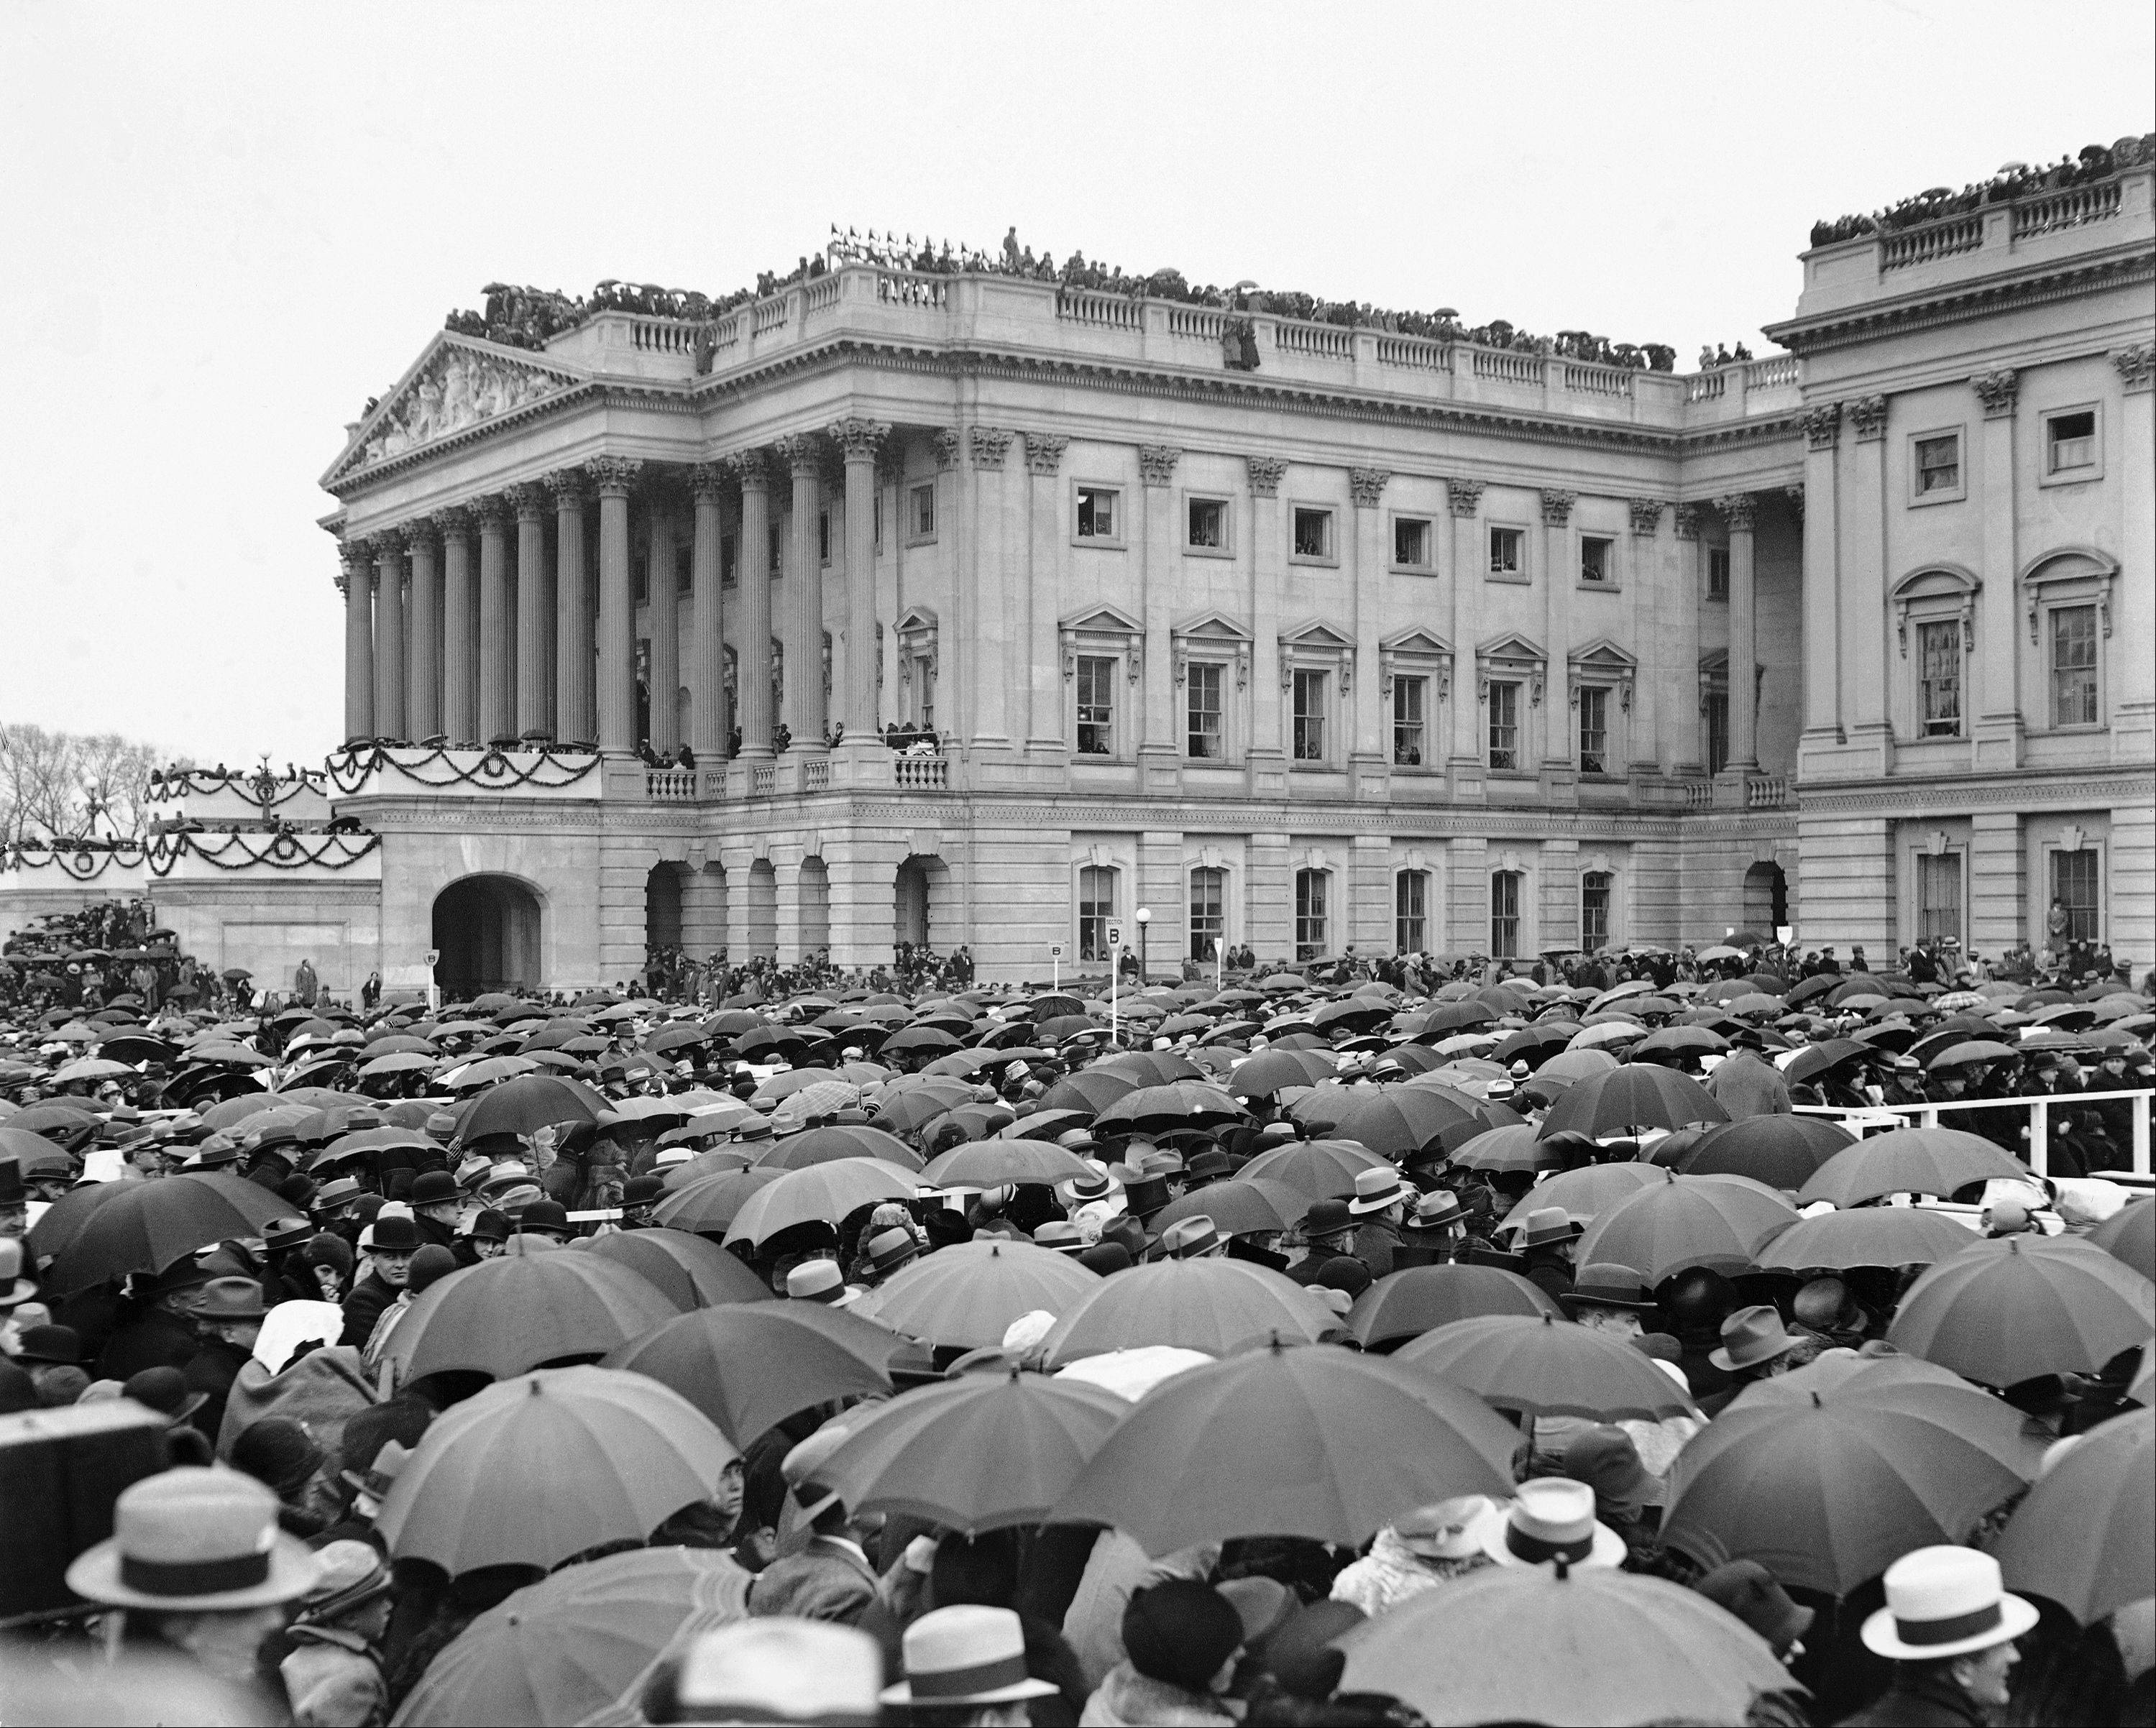 Crowds stand in the rain as they witness the inauguration of Herbert Hoover in Washington, D.C., March 4, 1929.